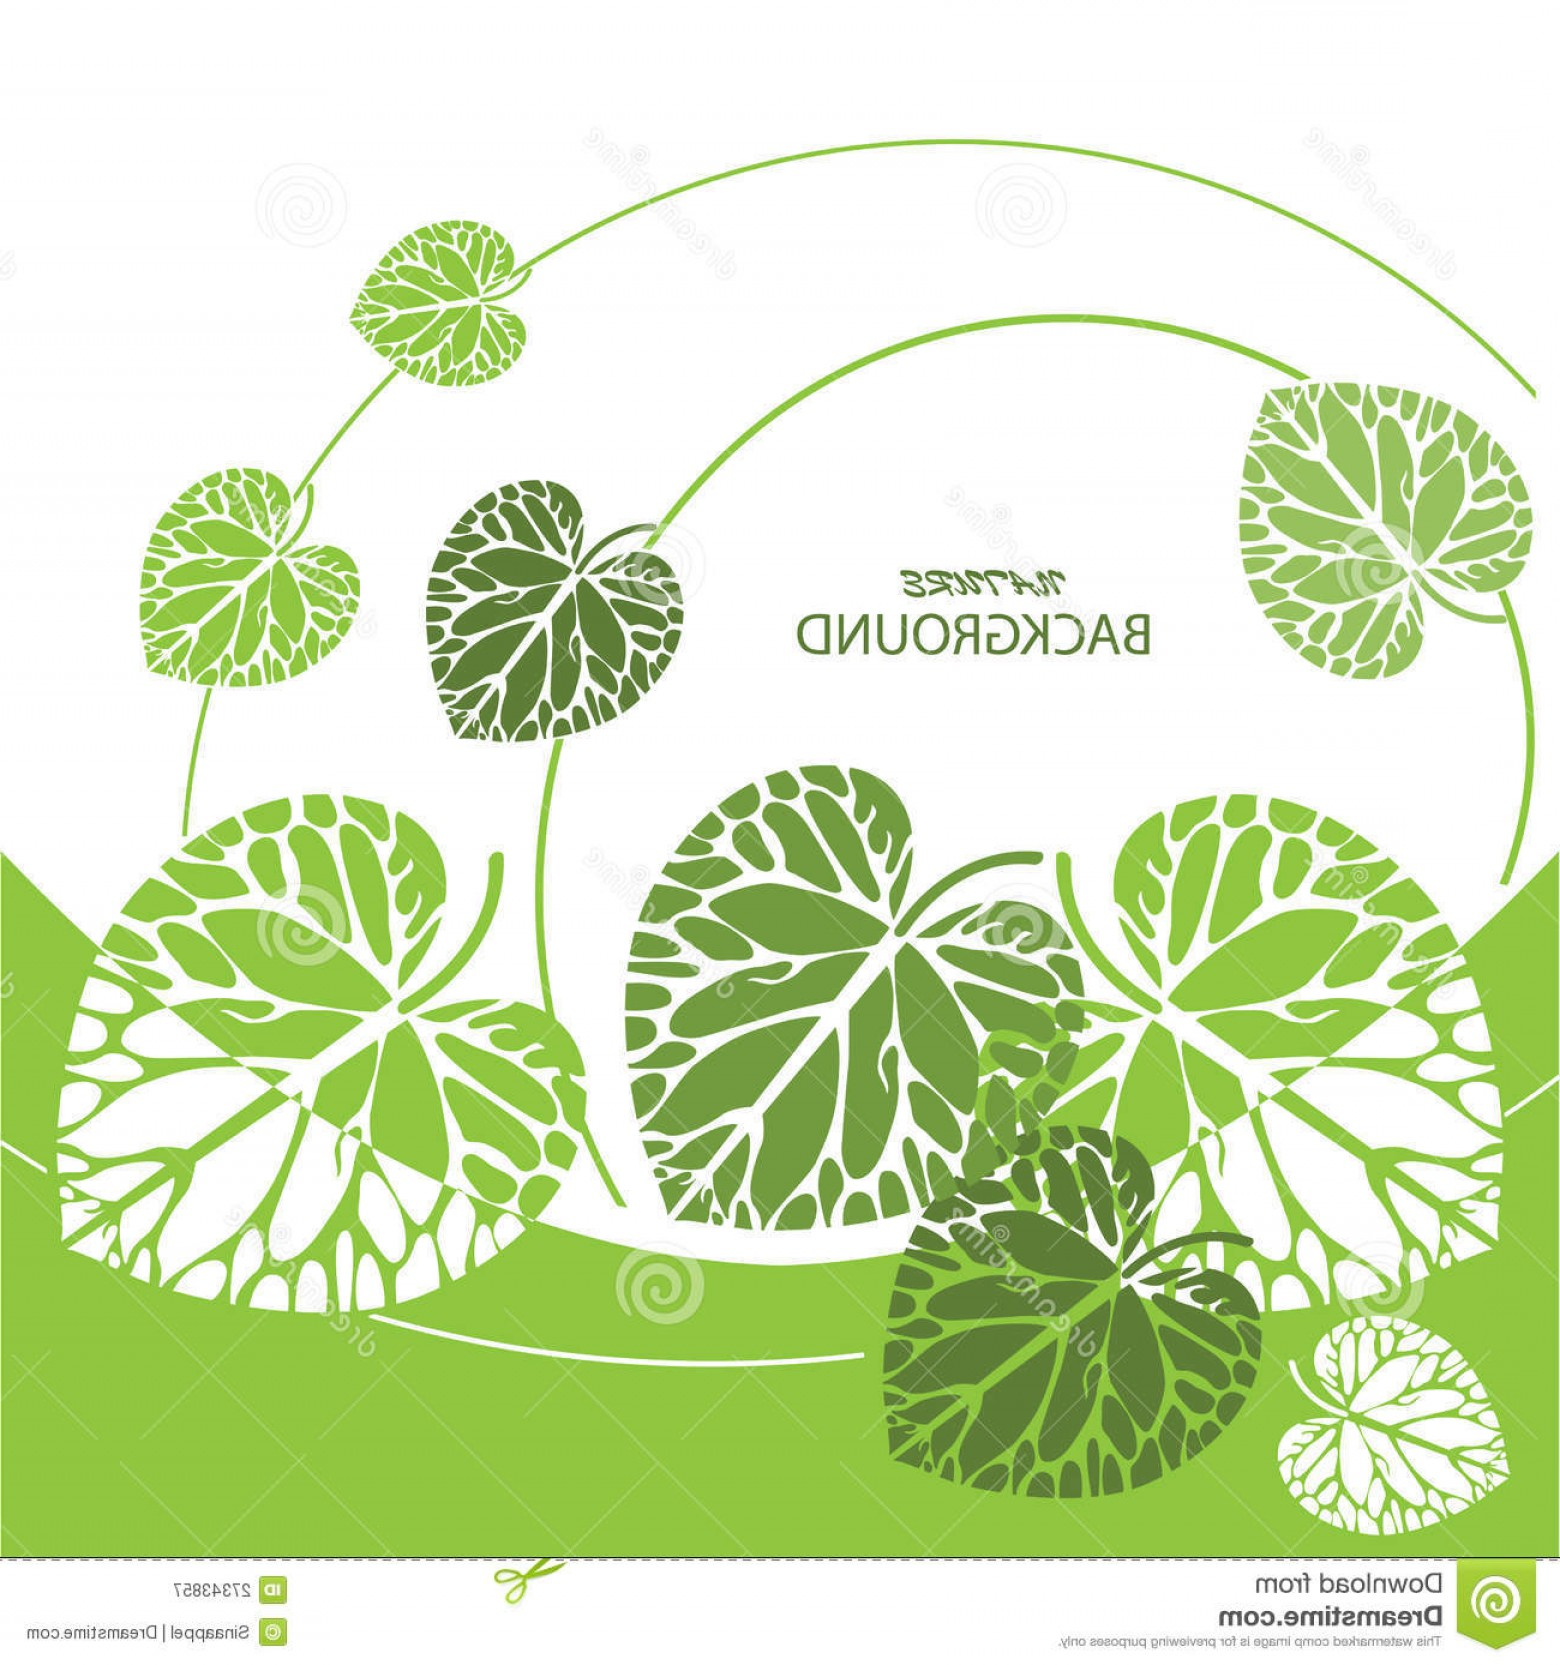 Leaf Background Vector: Royalty Free Stock Photography Green Leaves Background Vector Illustration Image